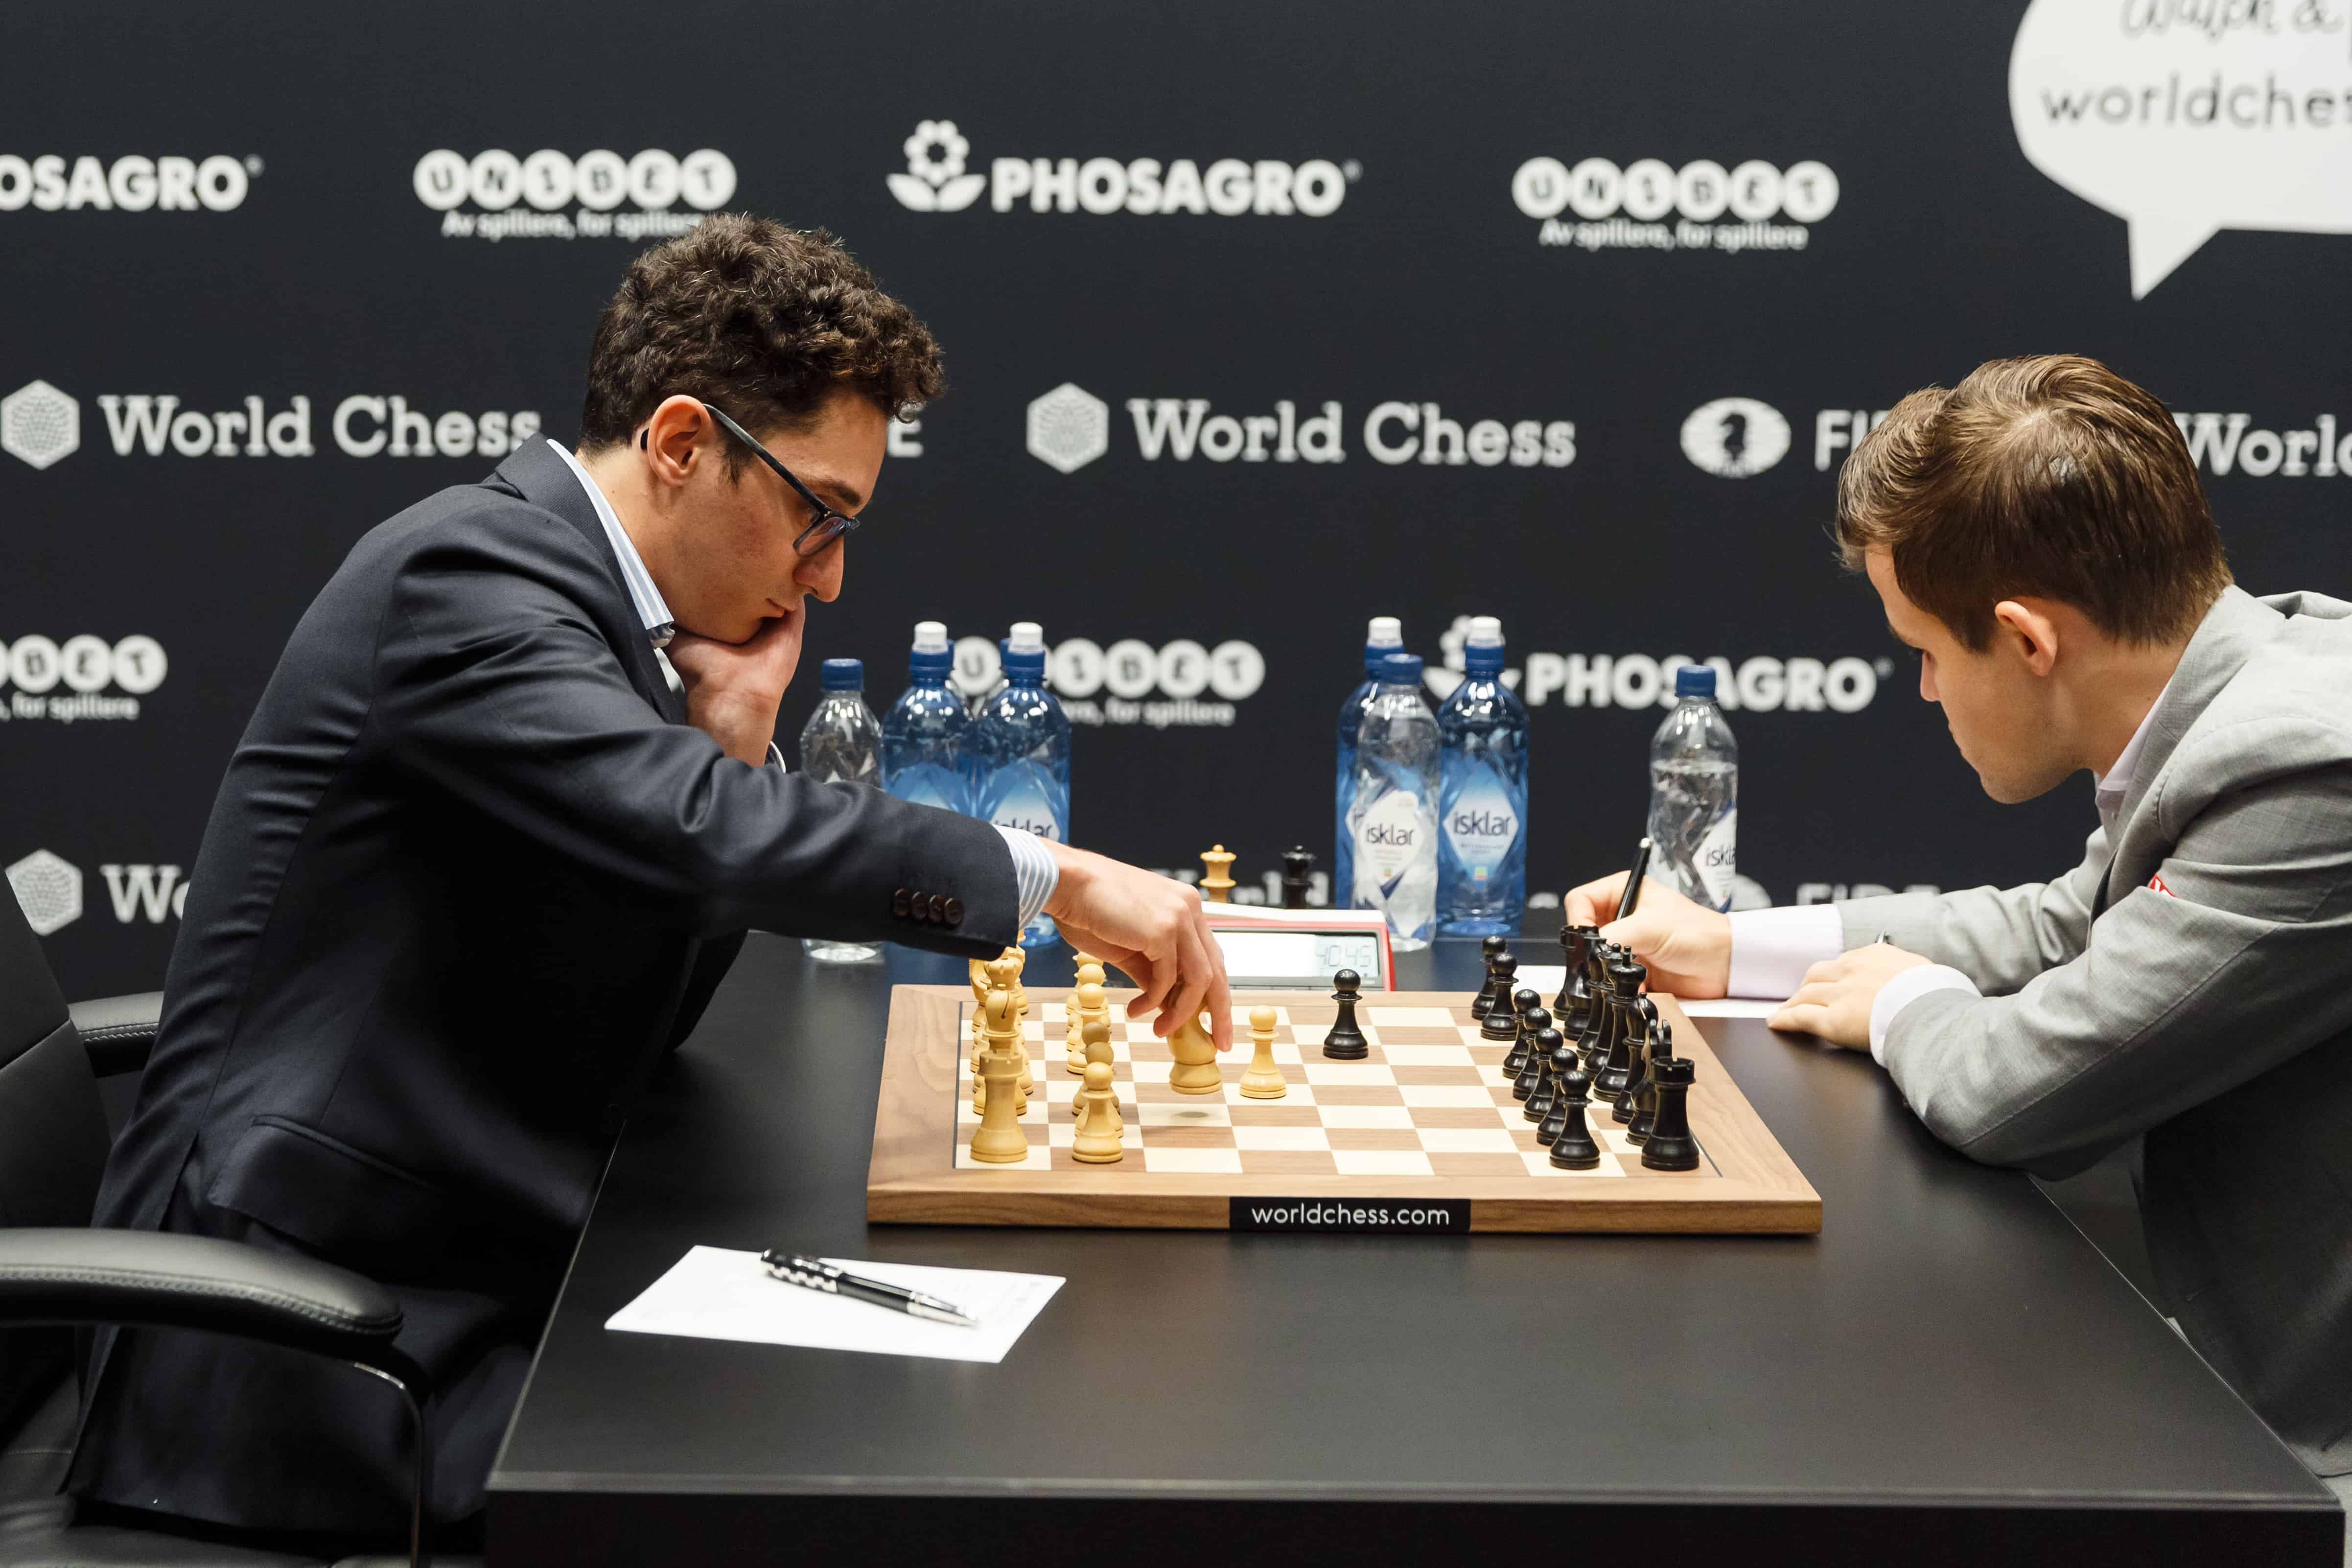 Fabiano Caruana net worth will be boosted if he wins the World Chess Championship